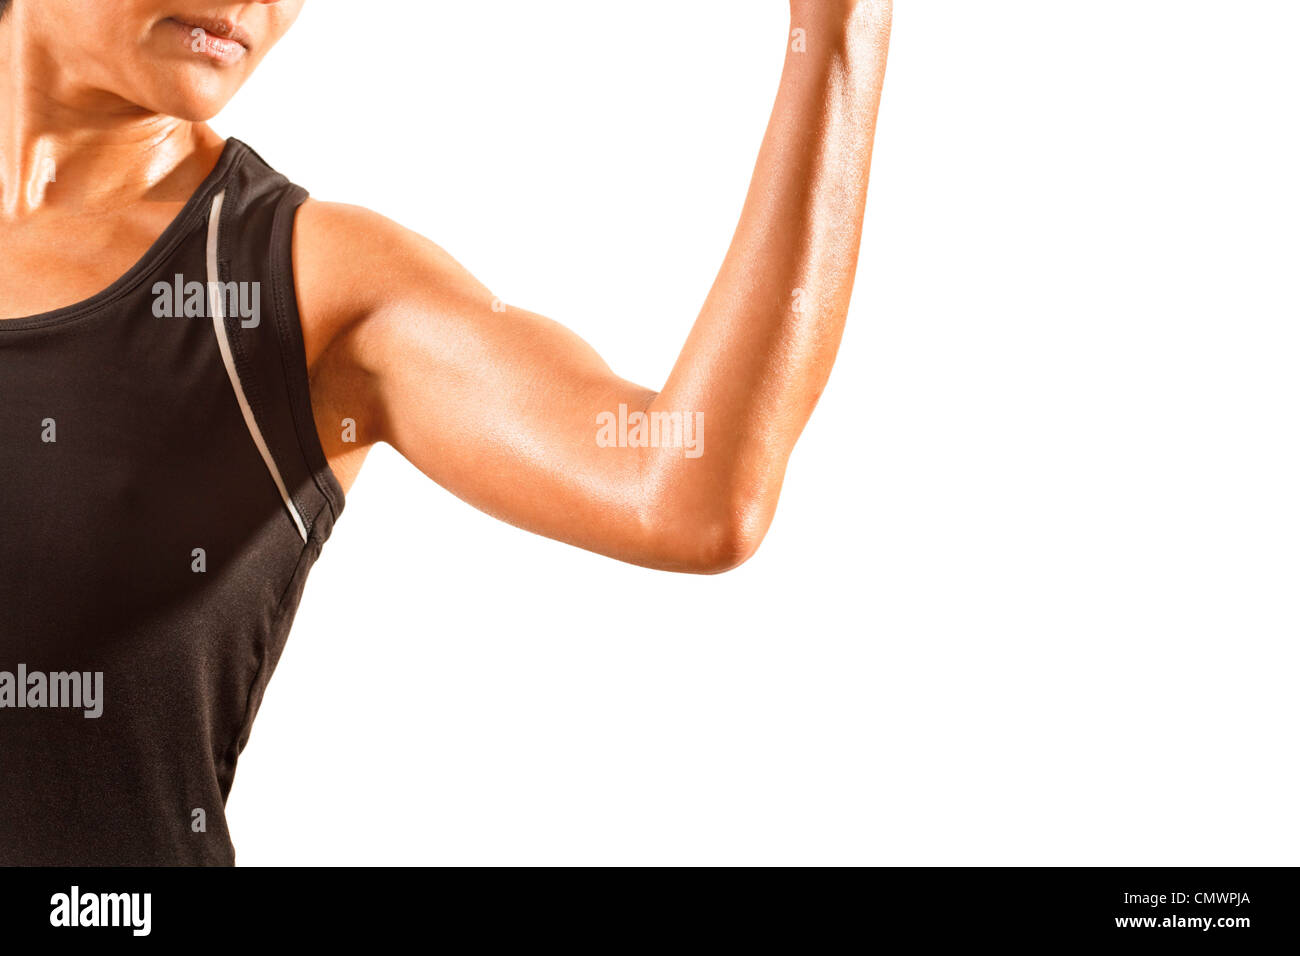 4b7e2131fb36d Athletic asian woman wearing lycra. Isolated against a white background  with space for copy.